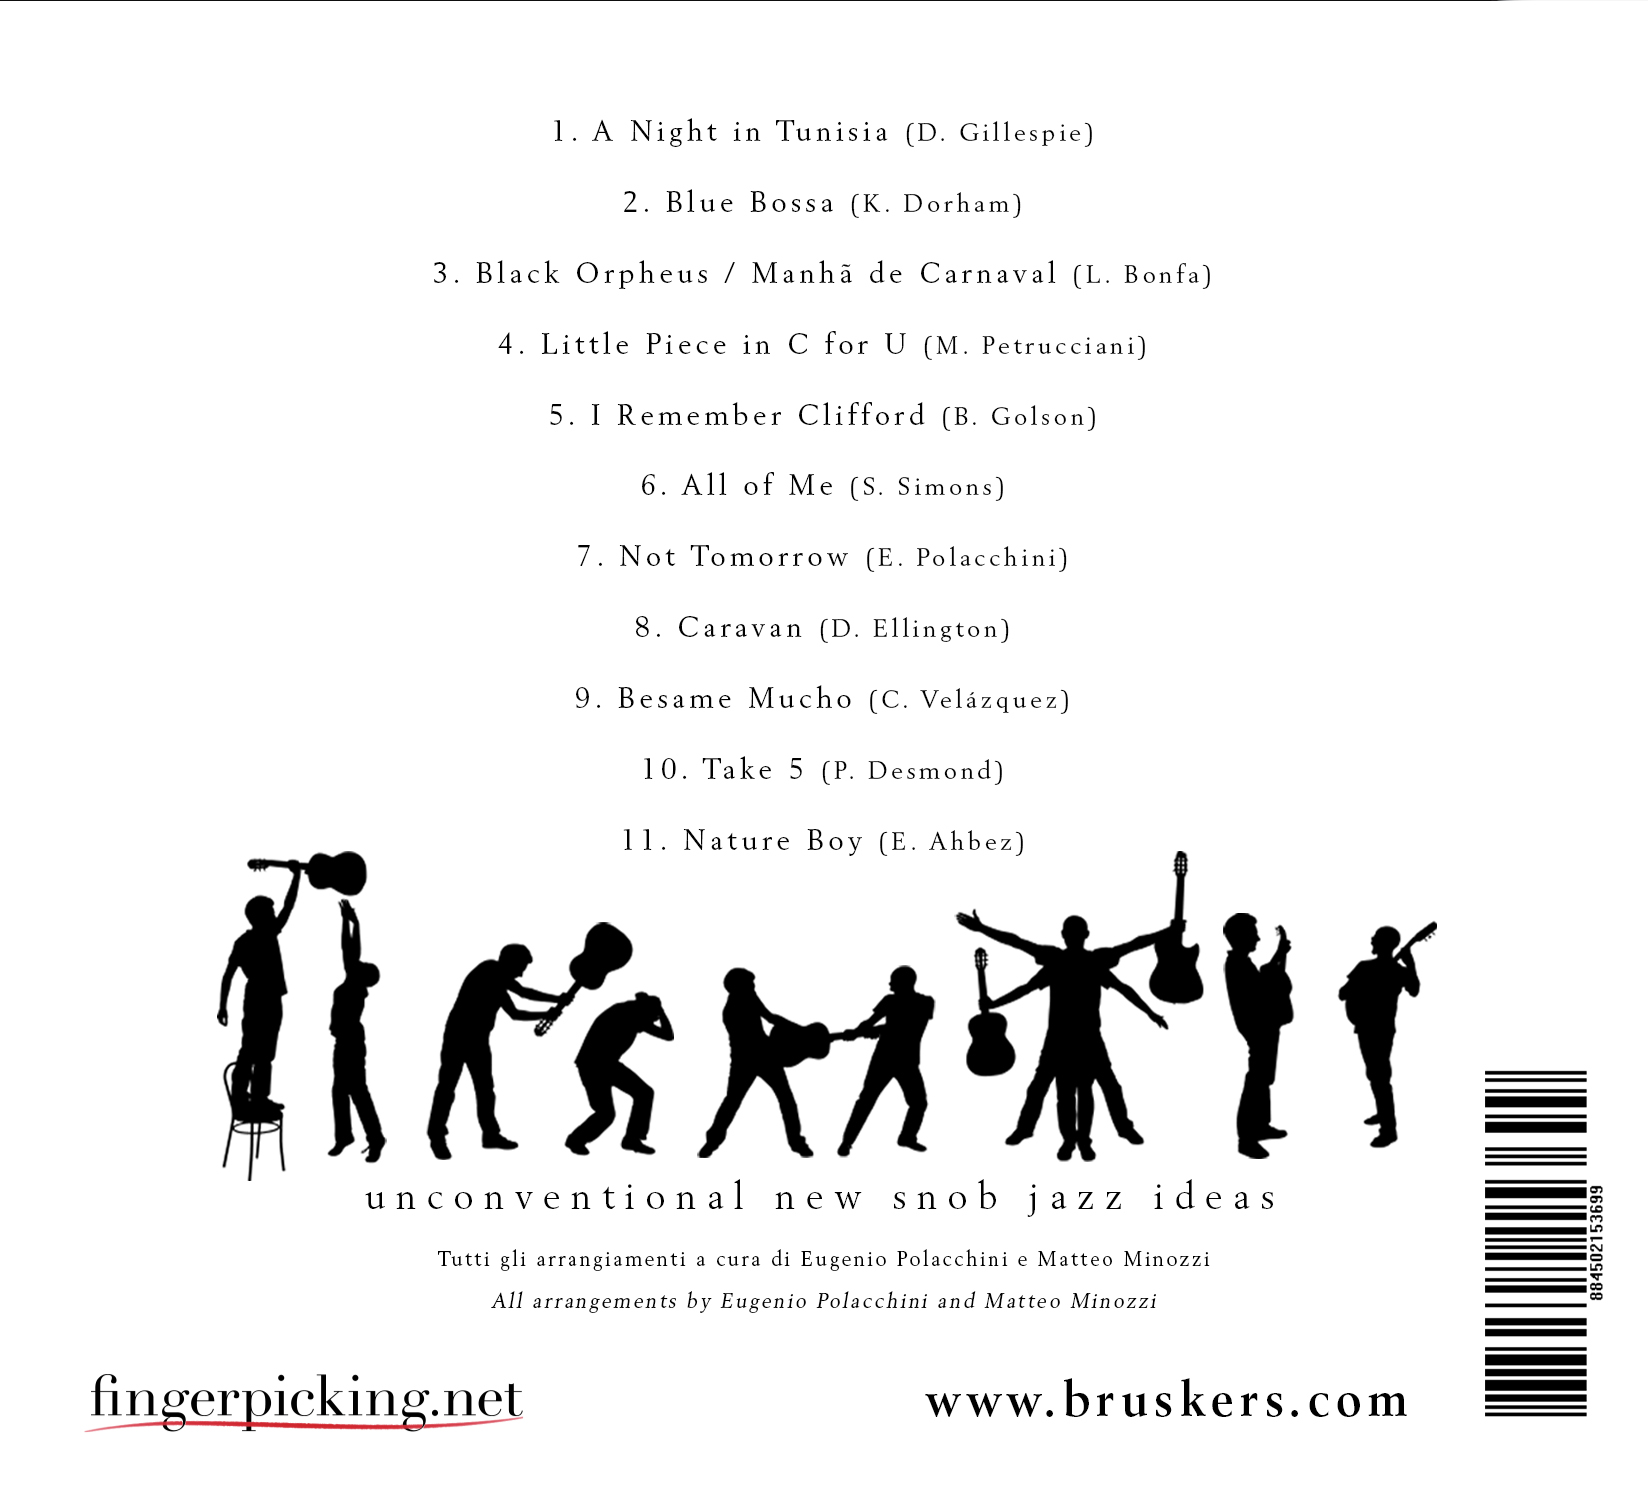 Guitar Sketch - CD back side - Bruskers Guitar Duo